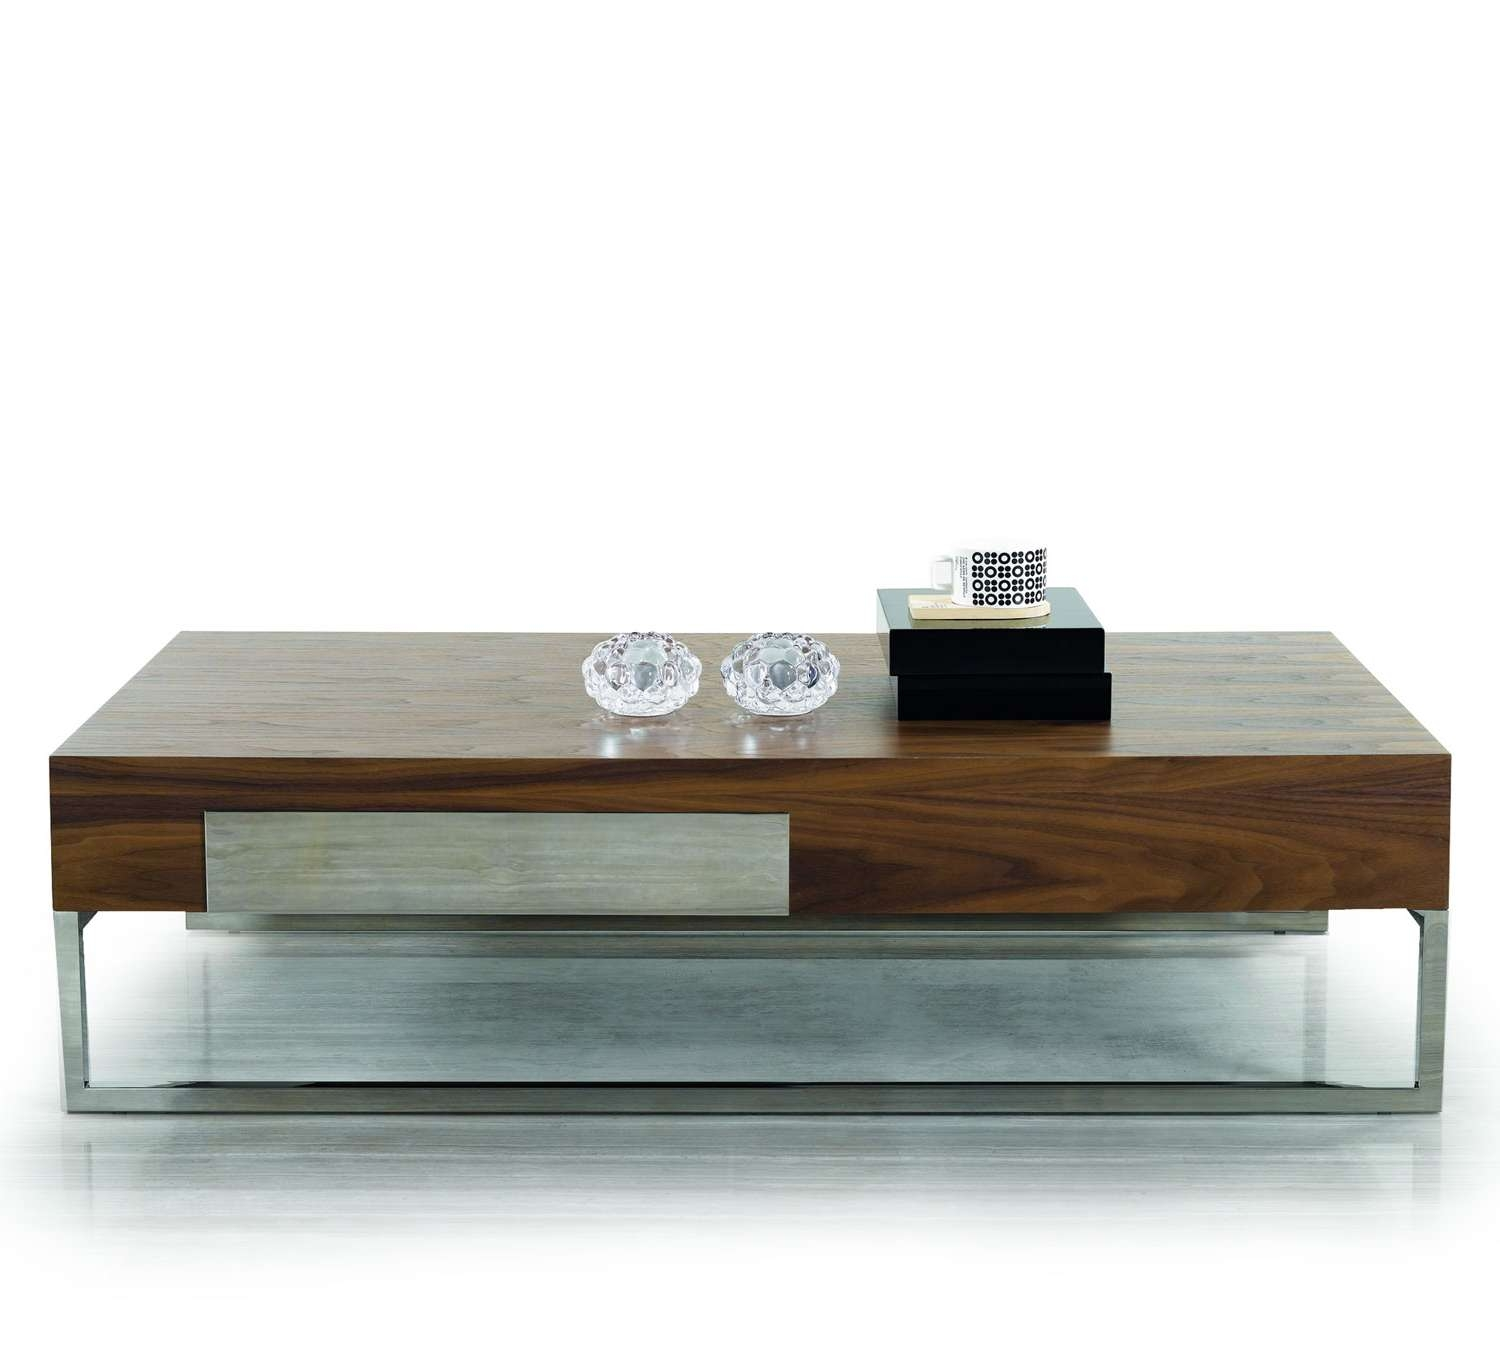 Contemporary And Modern Furniturej&m Furniture – Furnillion Intended For Well Liked Oak Veneer Coffee Tables (View 6 of 20)